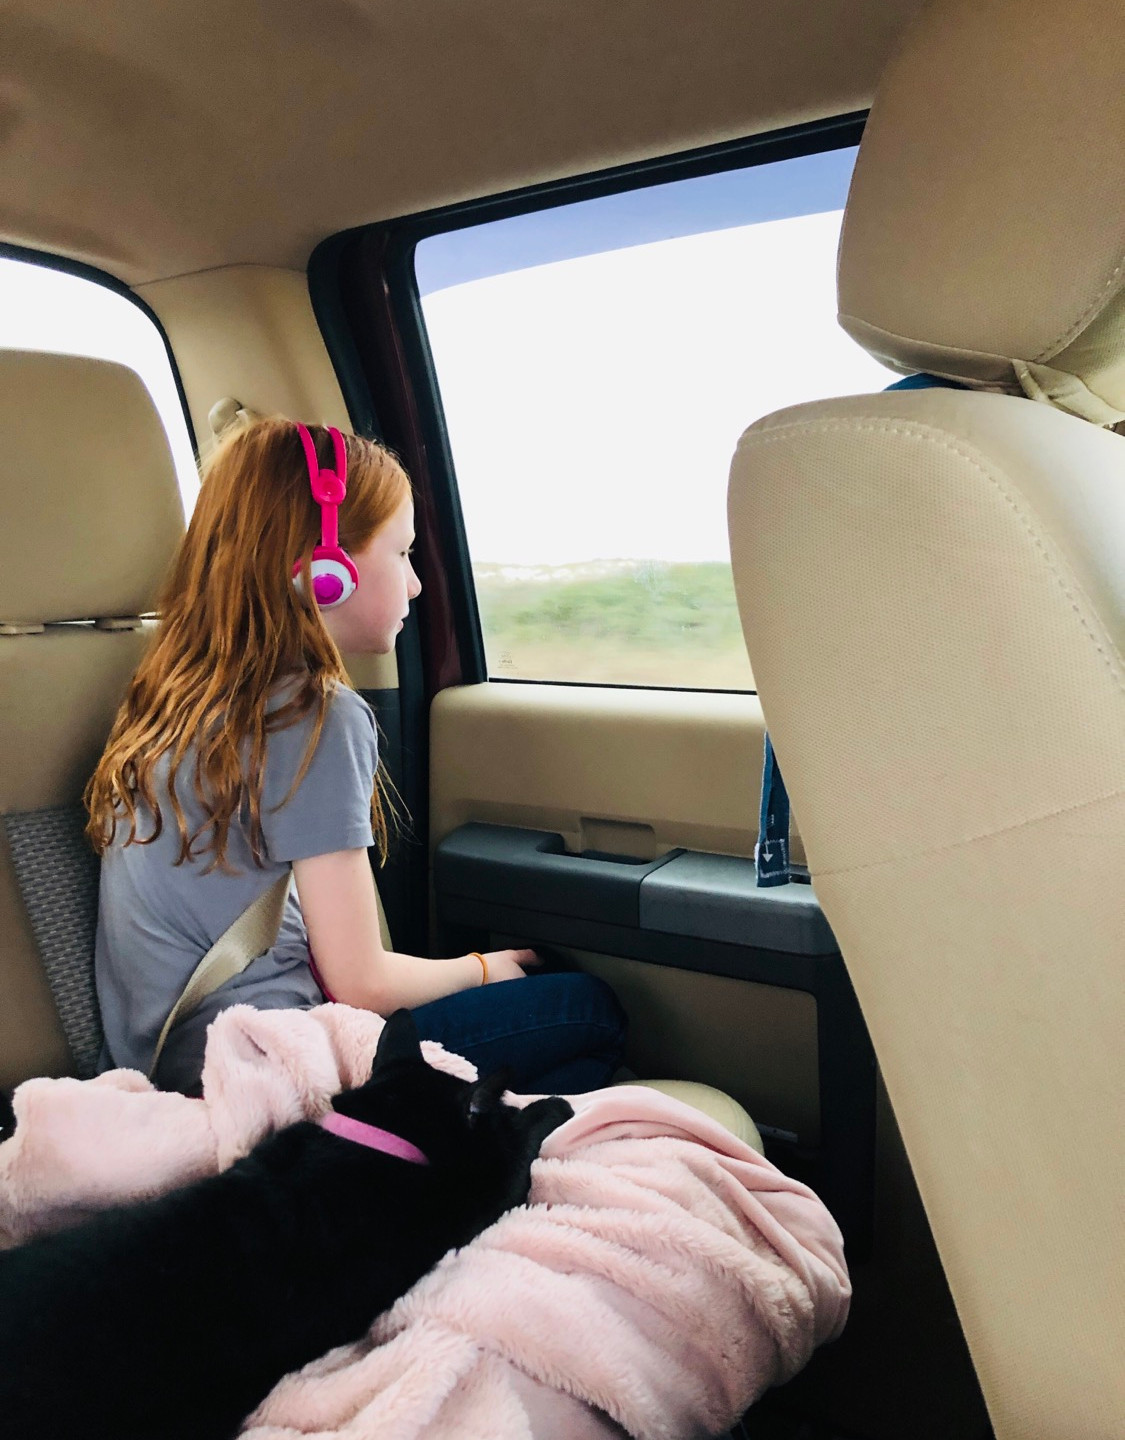 If Lila has done all her chores and schoolwork before we travel, she gets to listen to her own audiobook.  Trouble (the cat) gets to do whatever he wants no matter what 😣